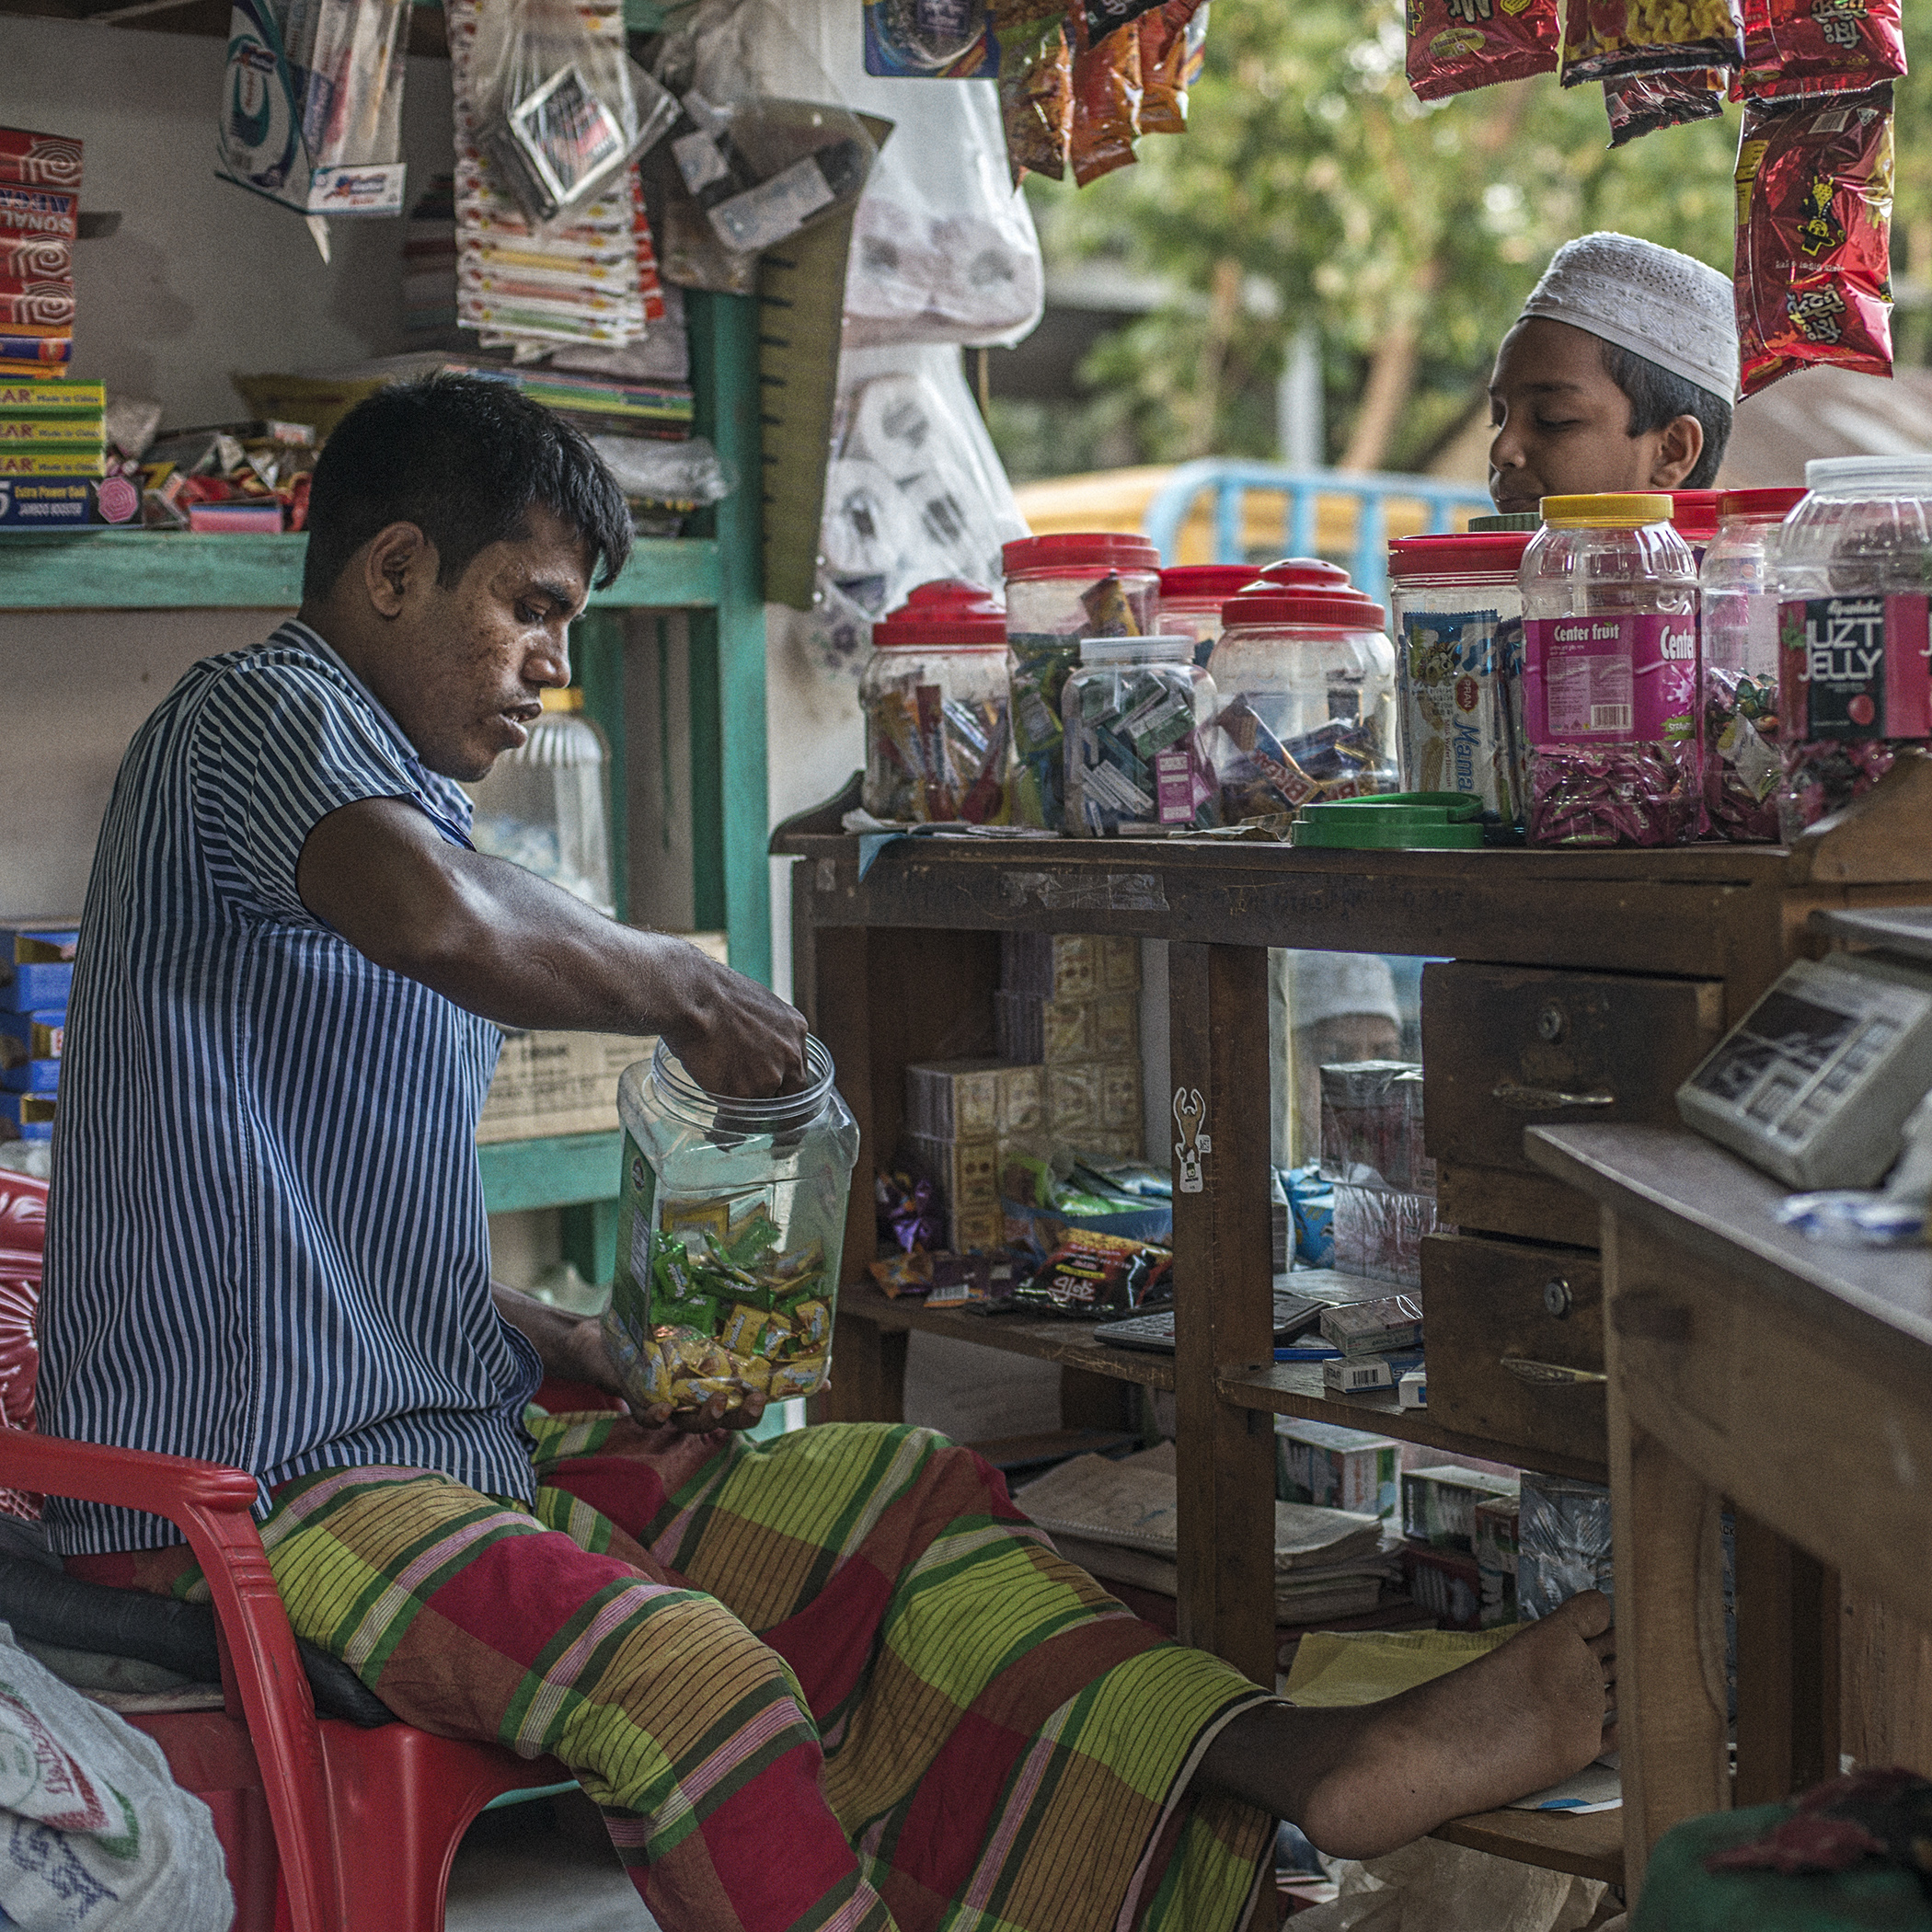 Sujon Mia, proud shop owner, continues to fight the memory of the Rana Plaza collapse and his disability due to it, by empowering himself with his job as a small-time business owner